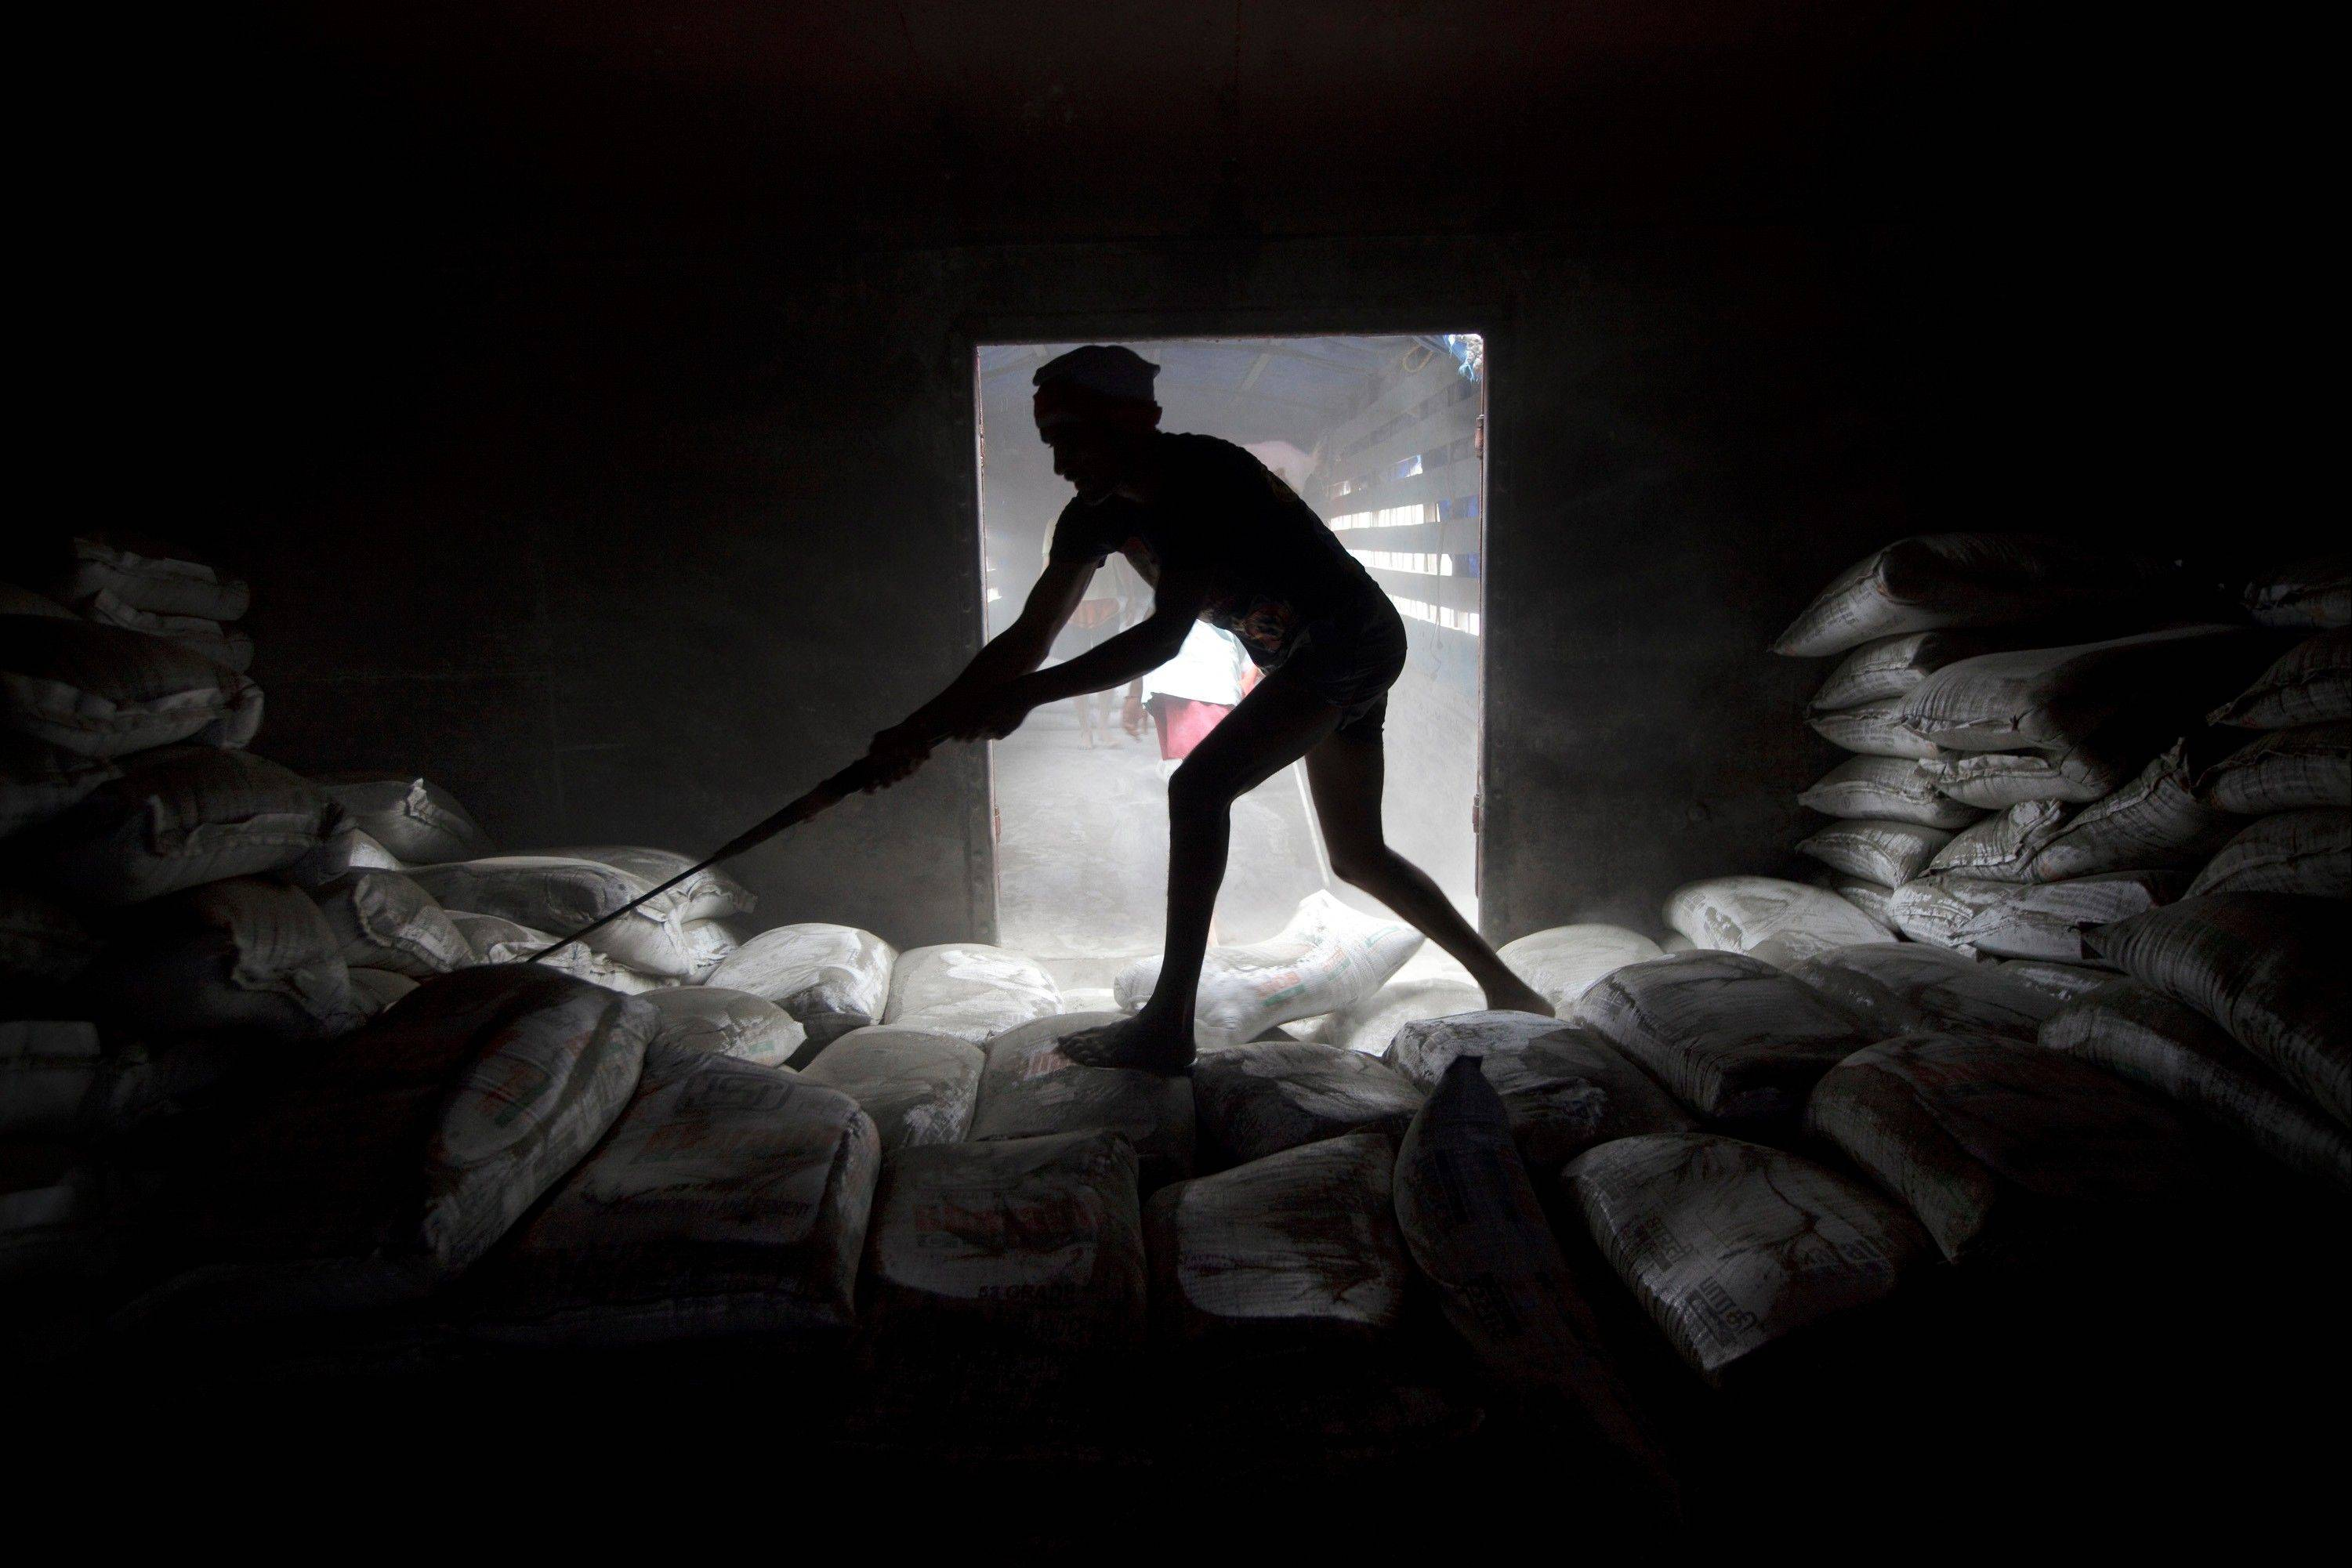 A worker unloads sacks of cement from a freight train in Mumbai, India, on Tuesday, Sept. 11, 2012. India, Asia's third-largest economy, grew 5.5 percent in the three months ended June 30 after expanding 5.3 percent in the previous quarter, the least in three years.